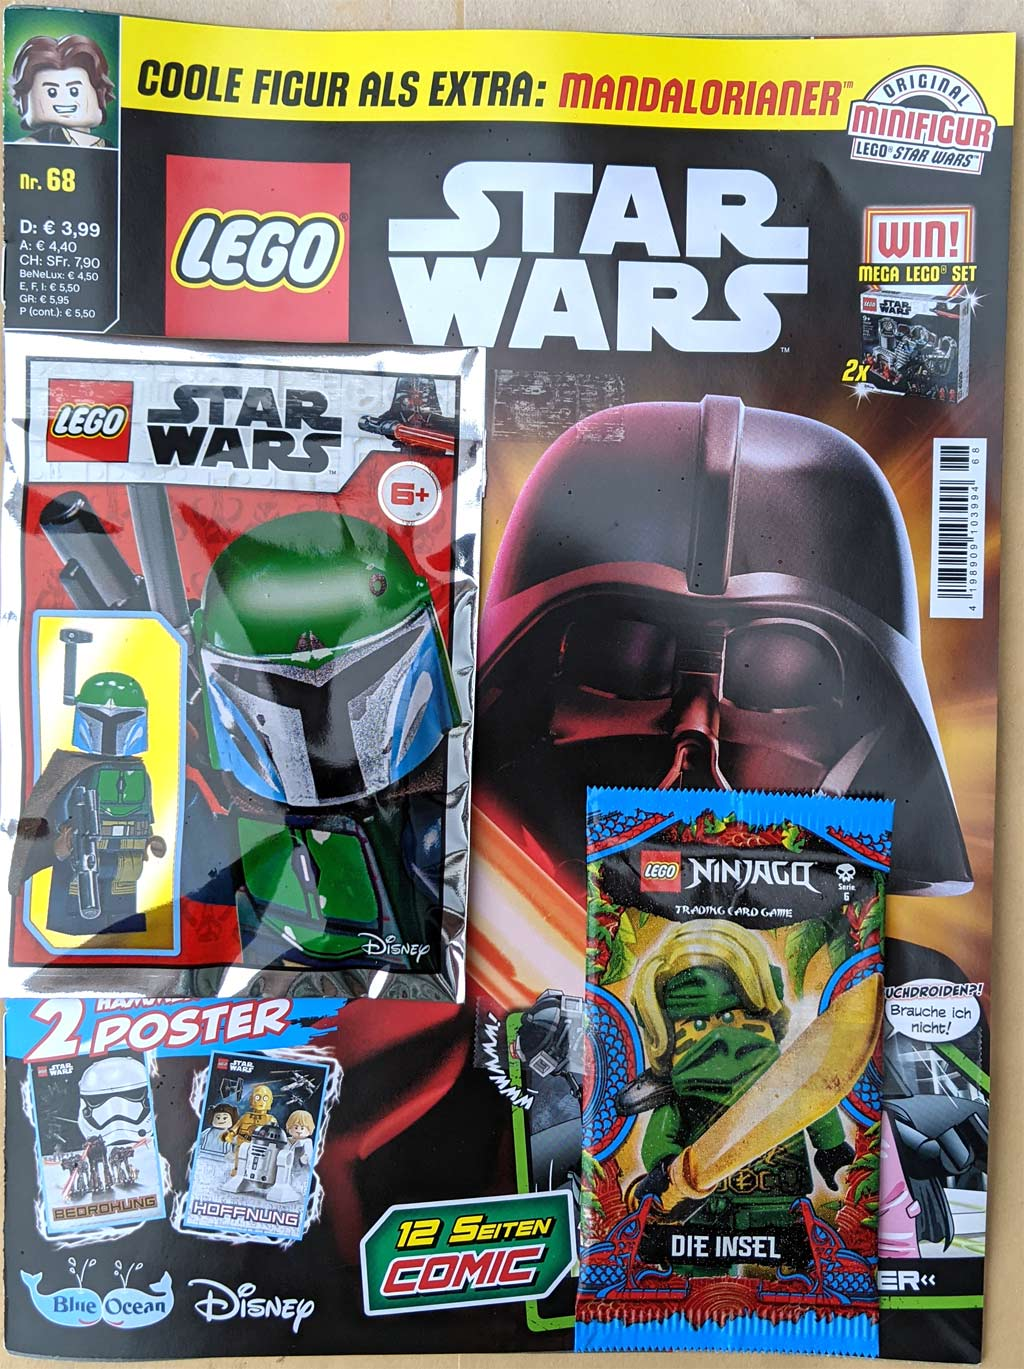 LEGO Star Wars Magazin Nummer 68